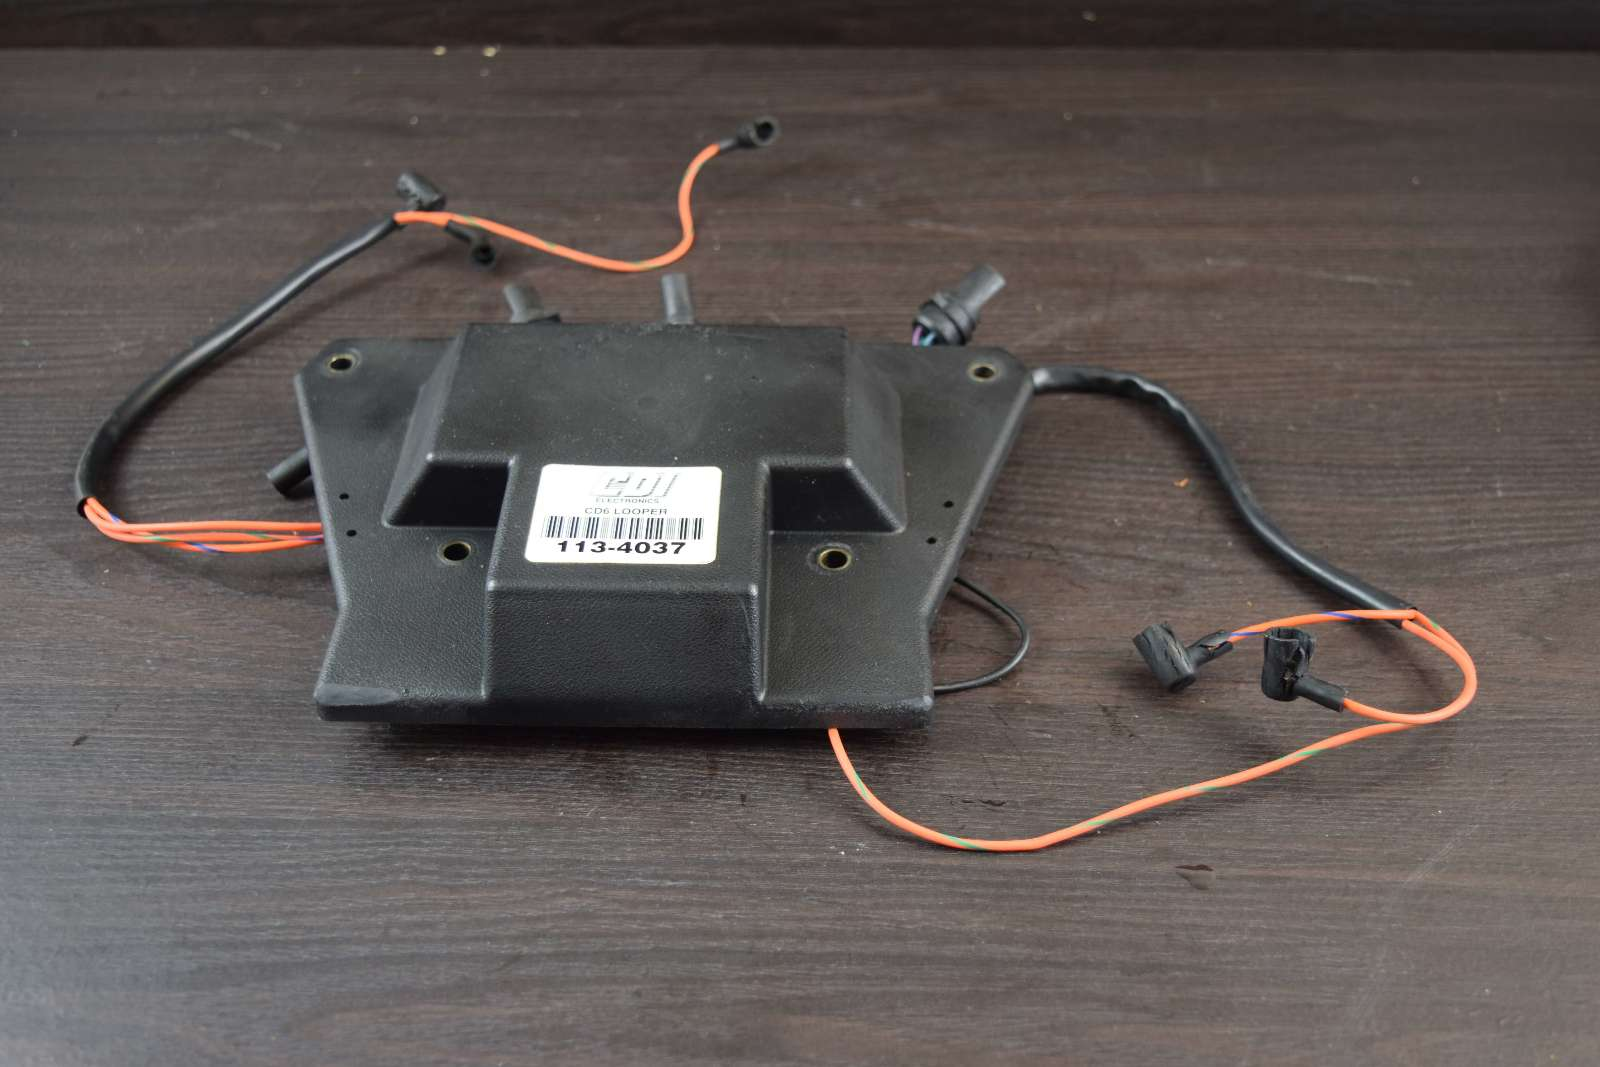 hight resolution of 586667 113 4037 cdi 1988 1992 power pack replaces omc 185 225 hp 1 year wty southcentral outboards